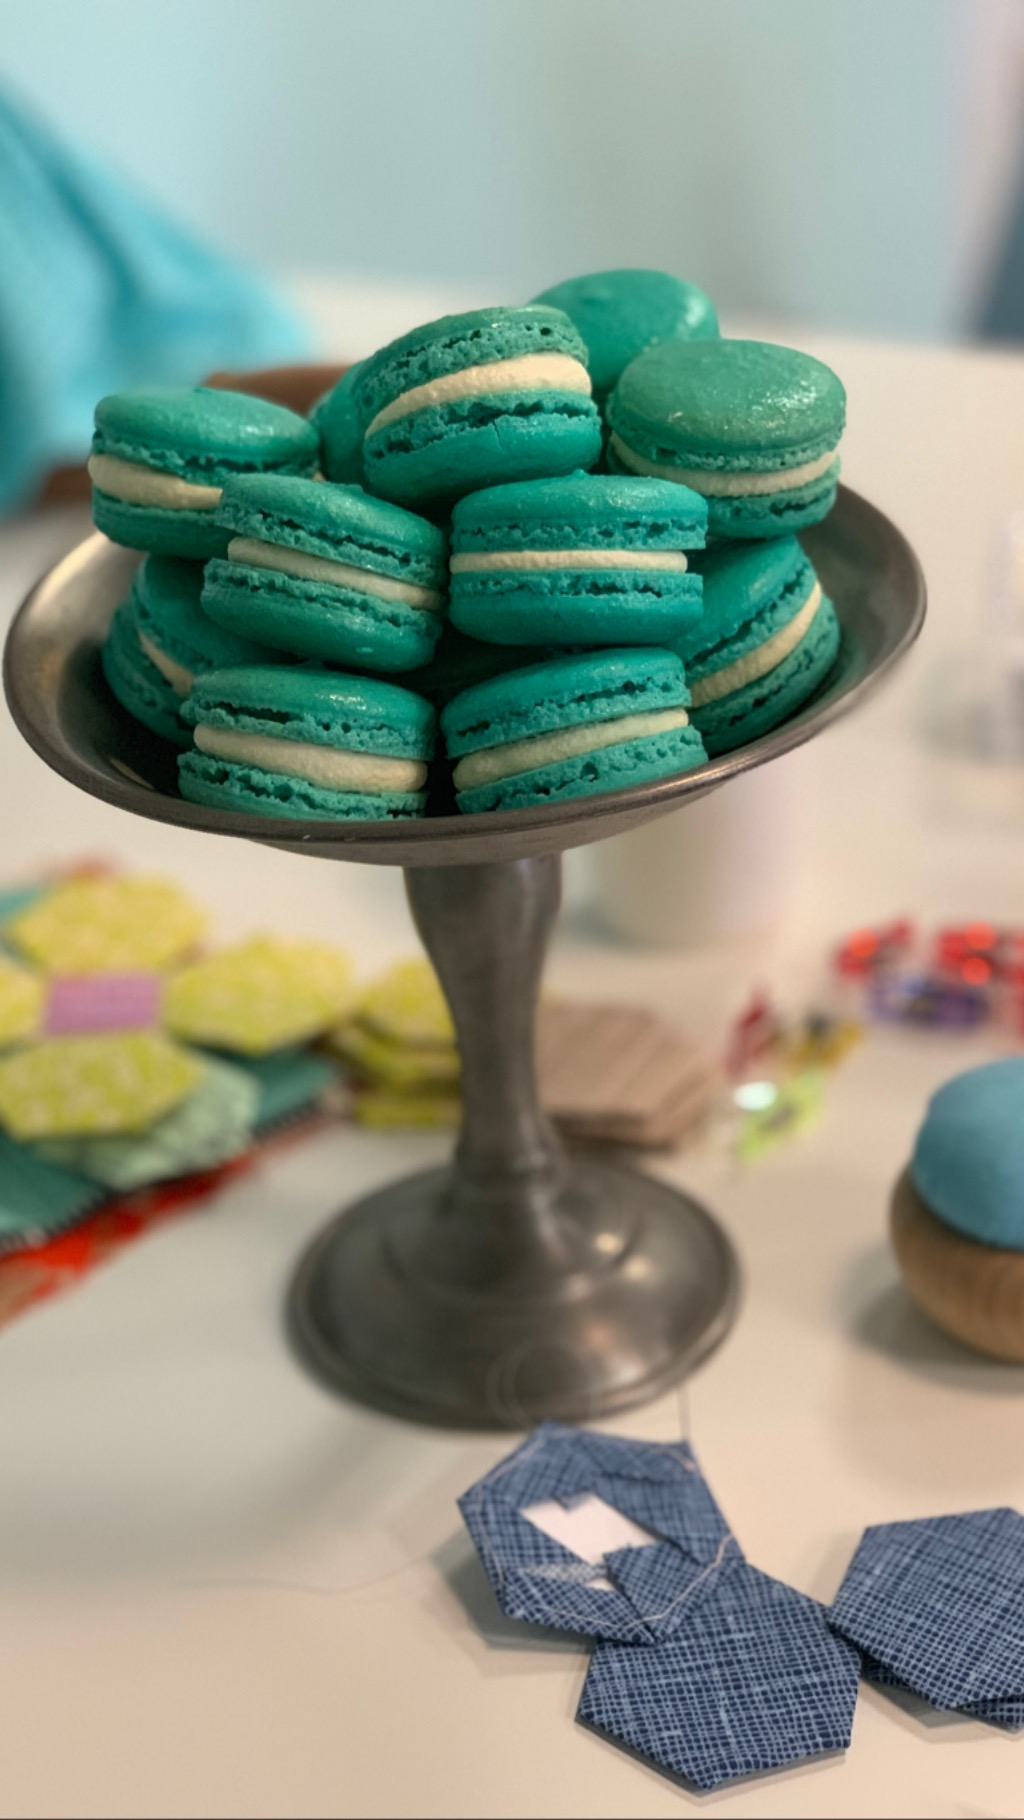 Aren't these macarons beautiful?!